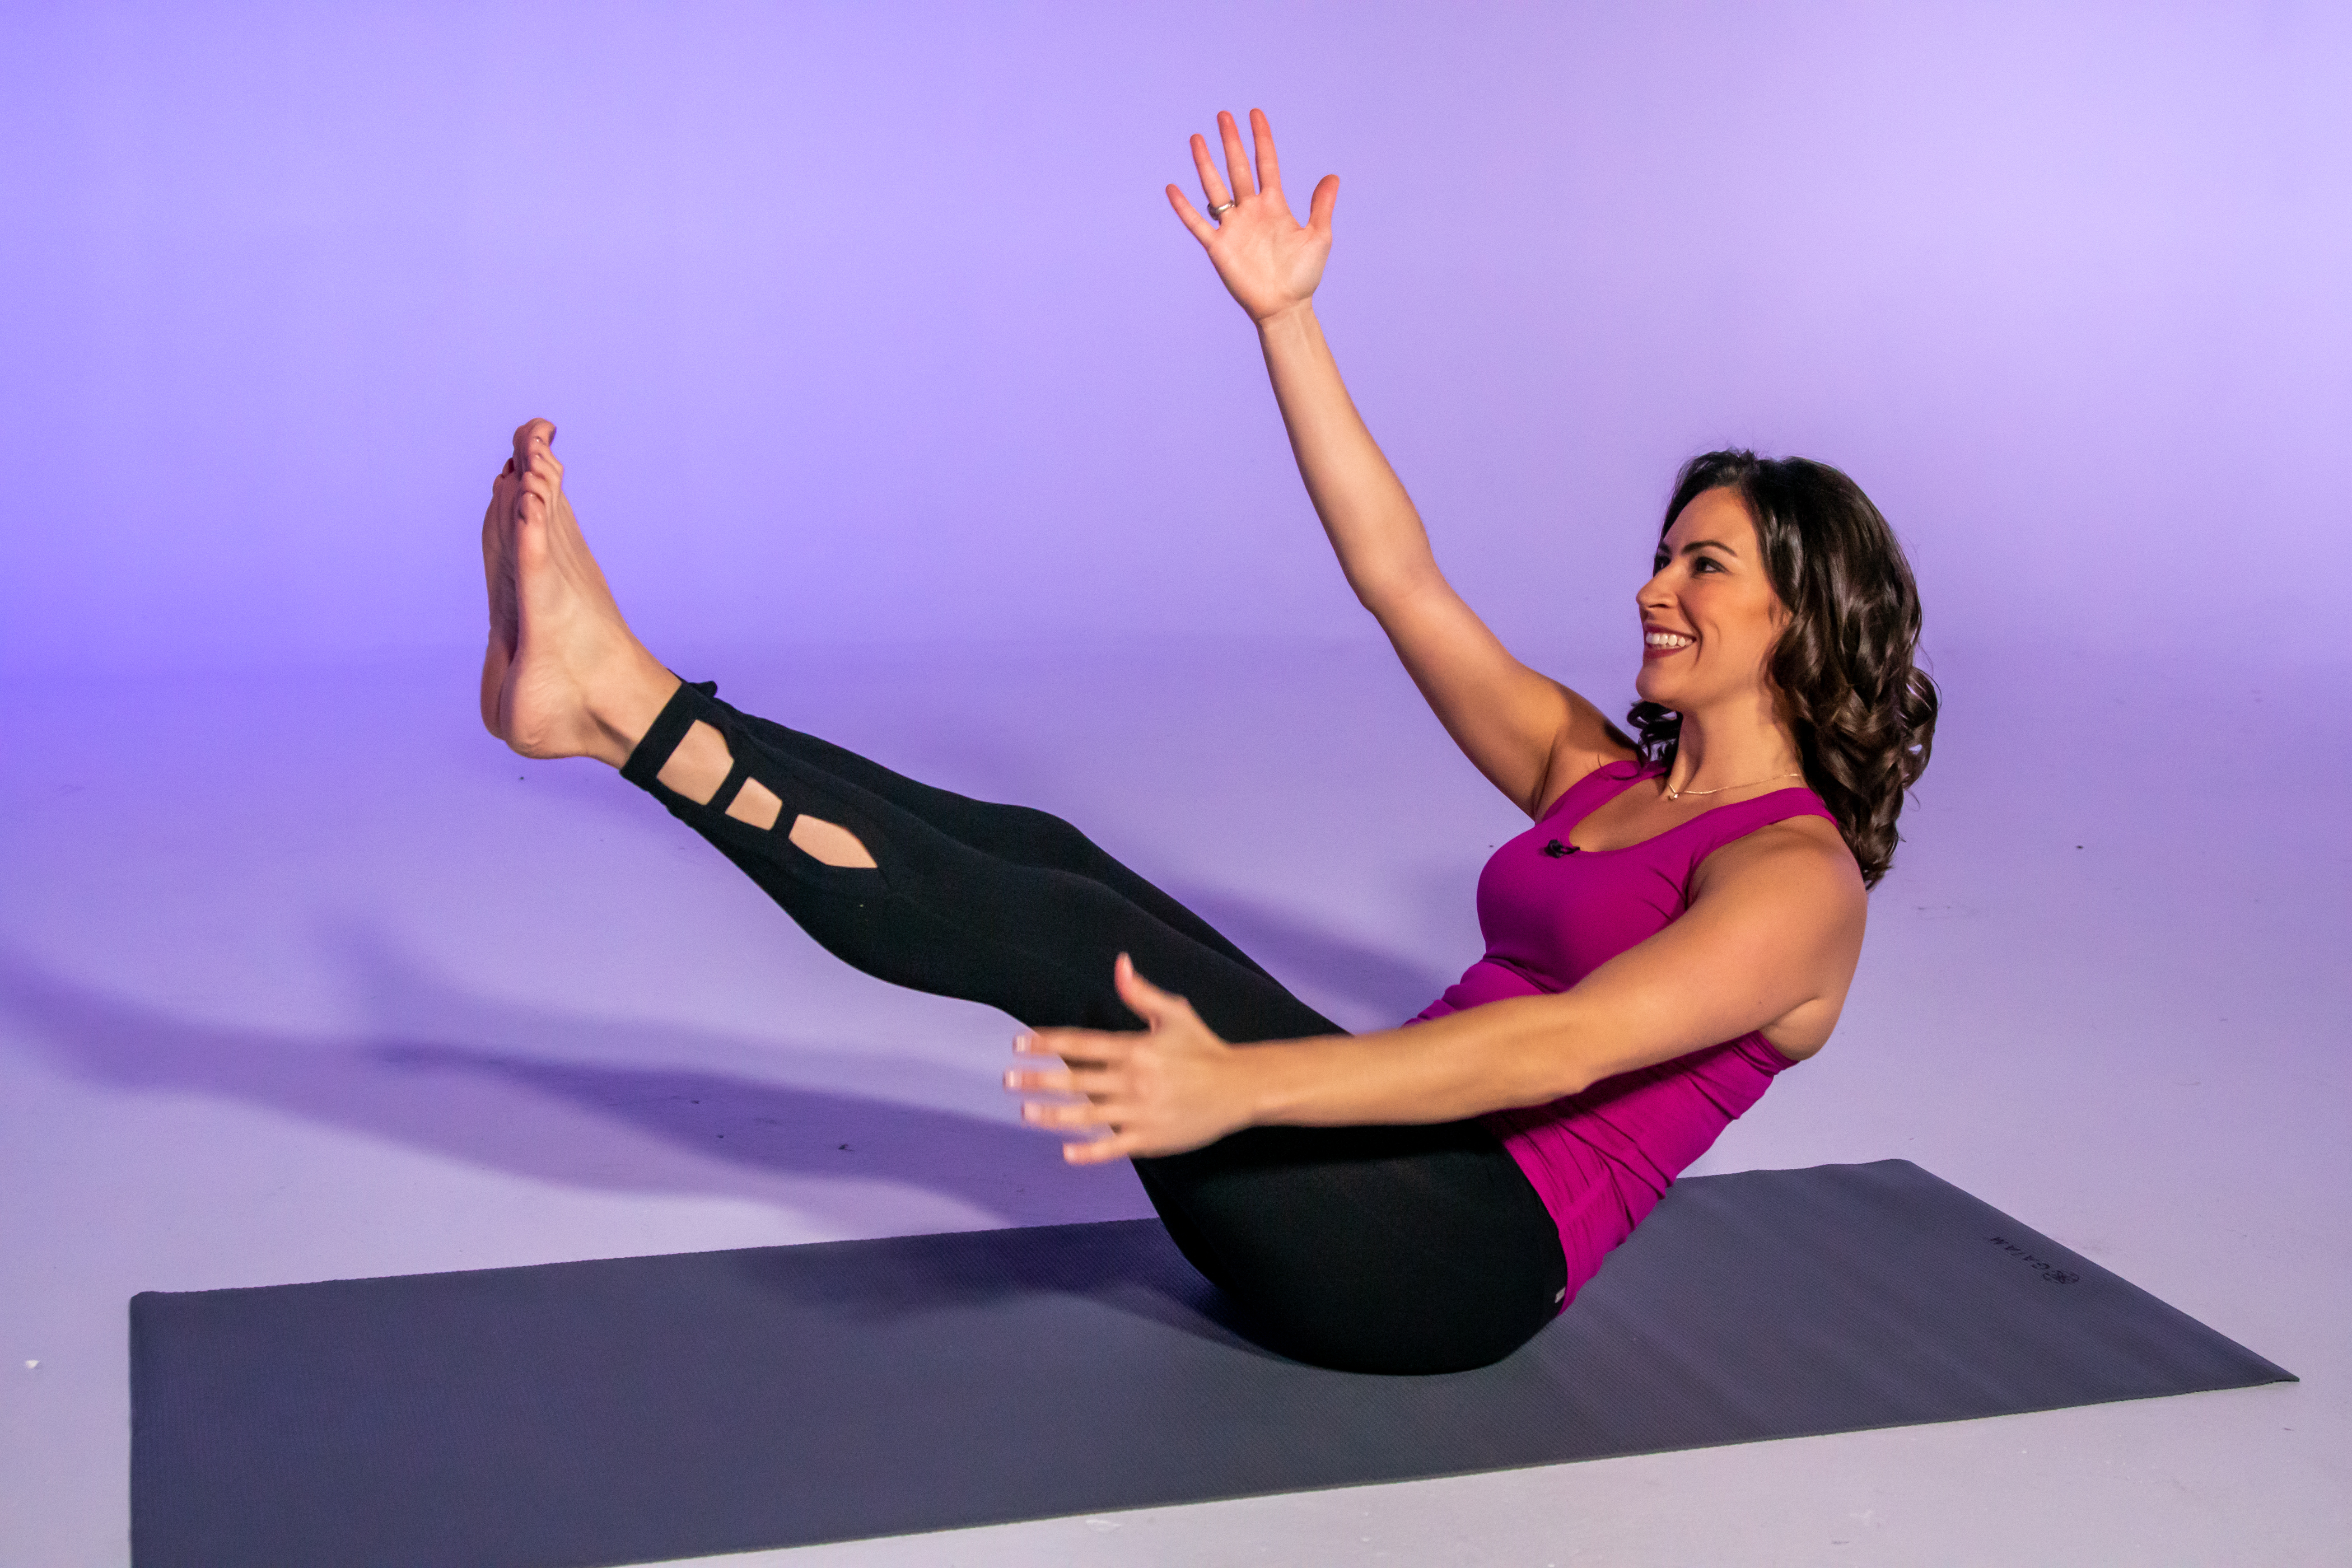 Health and fitness expert Stephanie Mansour demonstrates a modified V-sit that is part of her improving-your-balance workout.